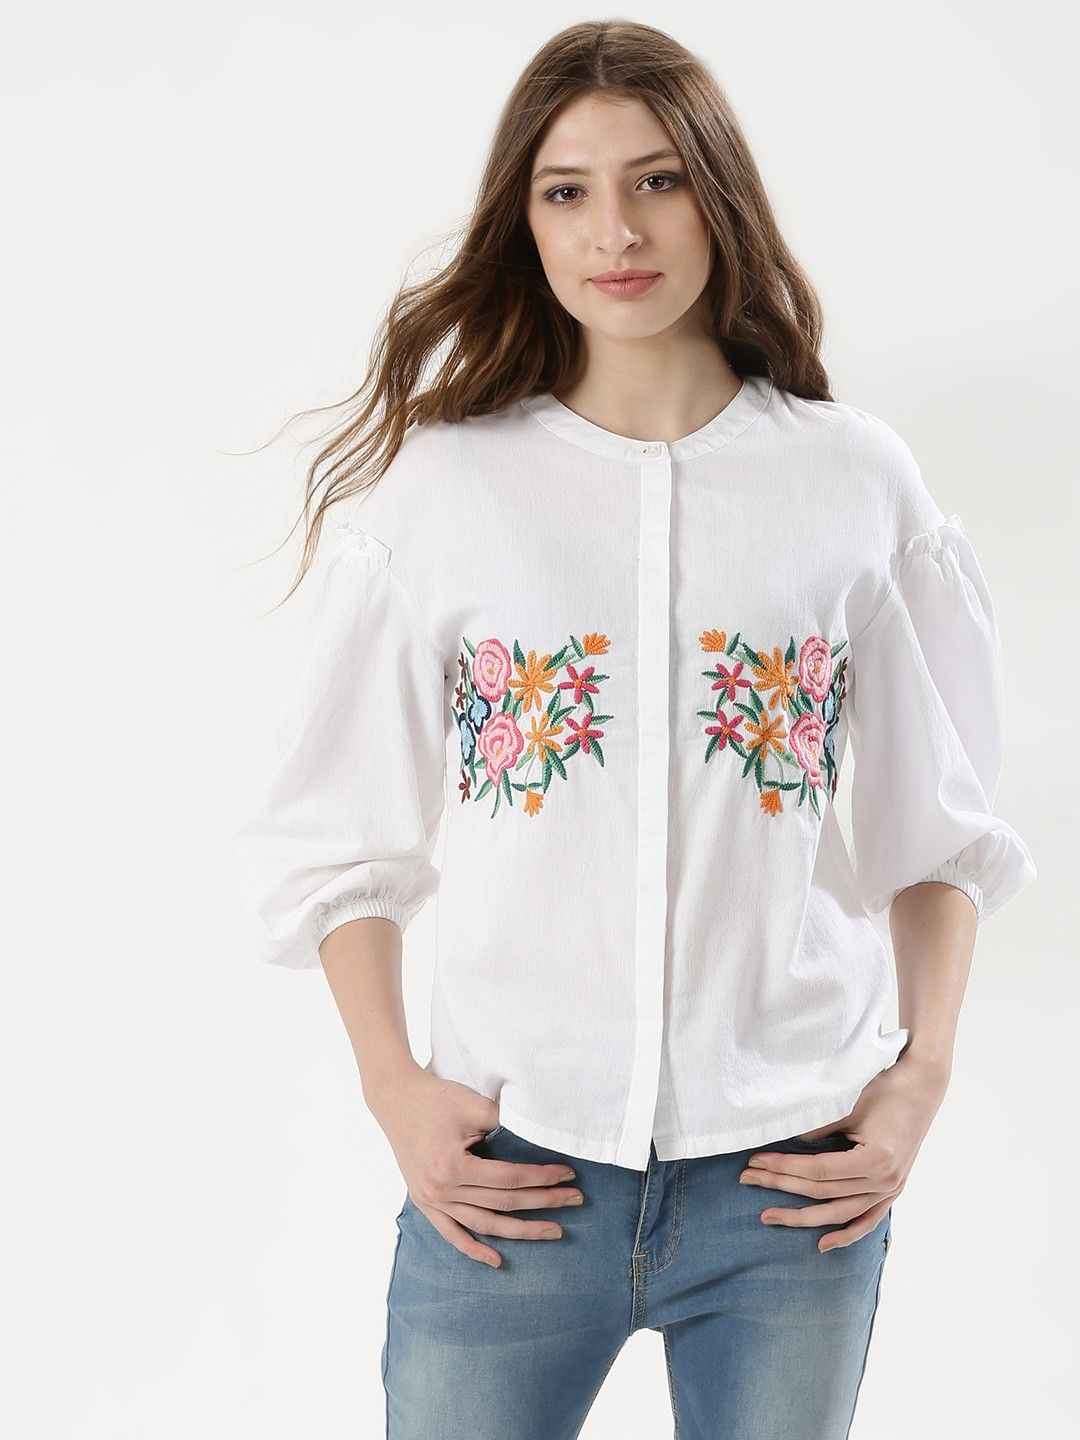 dc0cdaecb03 Buy Embroidered Shirt For Women - Women s White Shirts Online in India